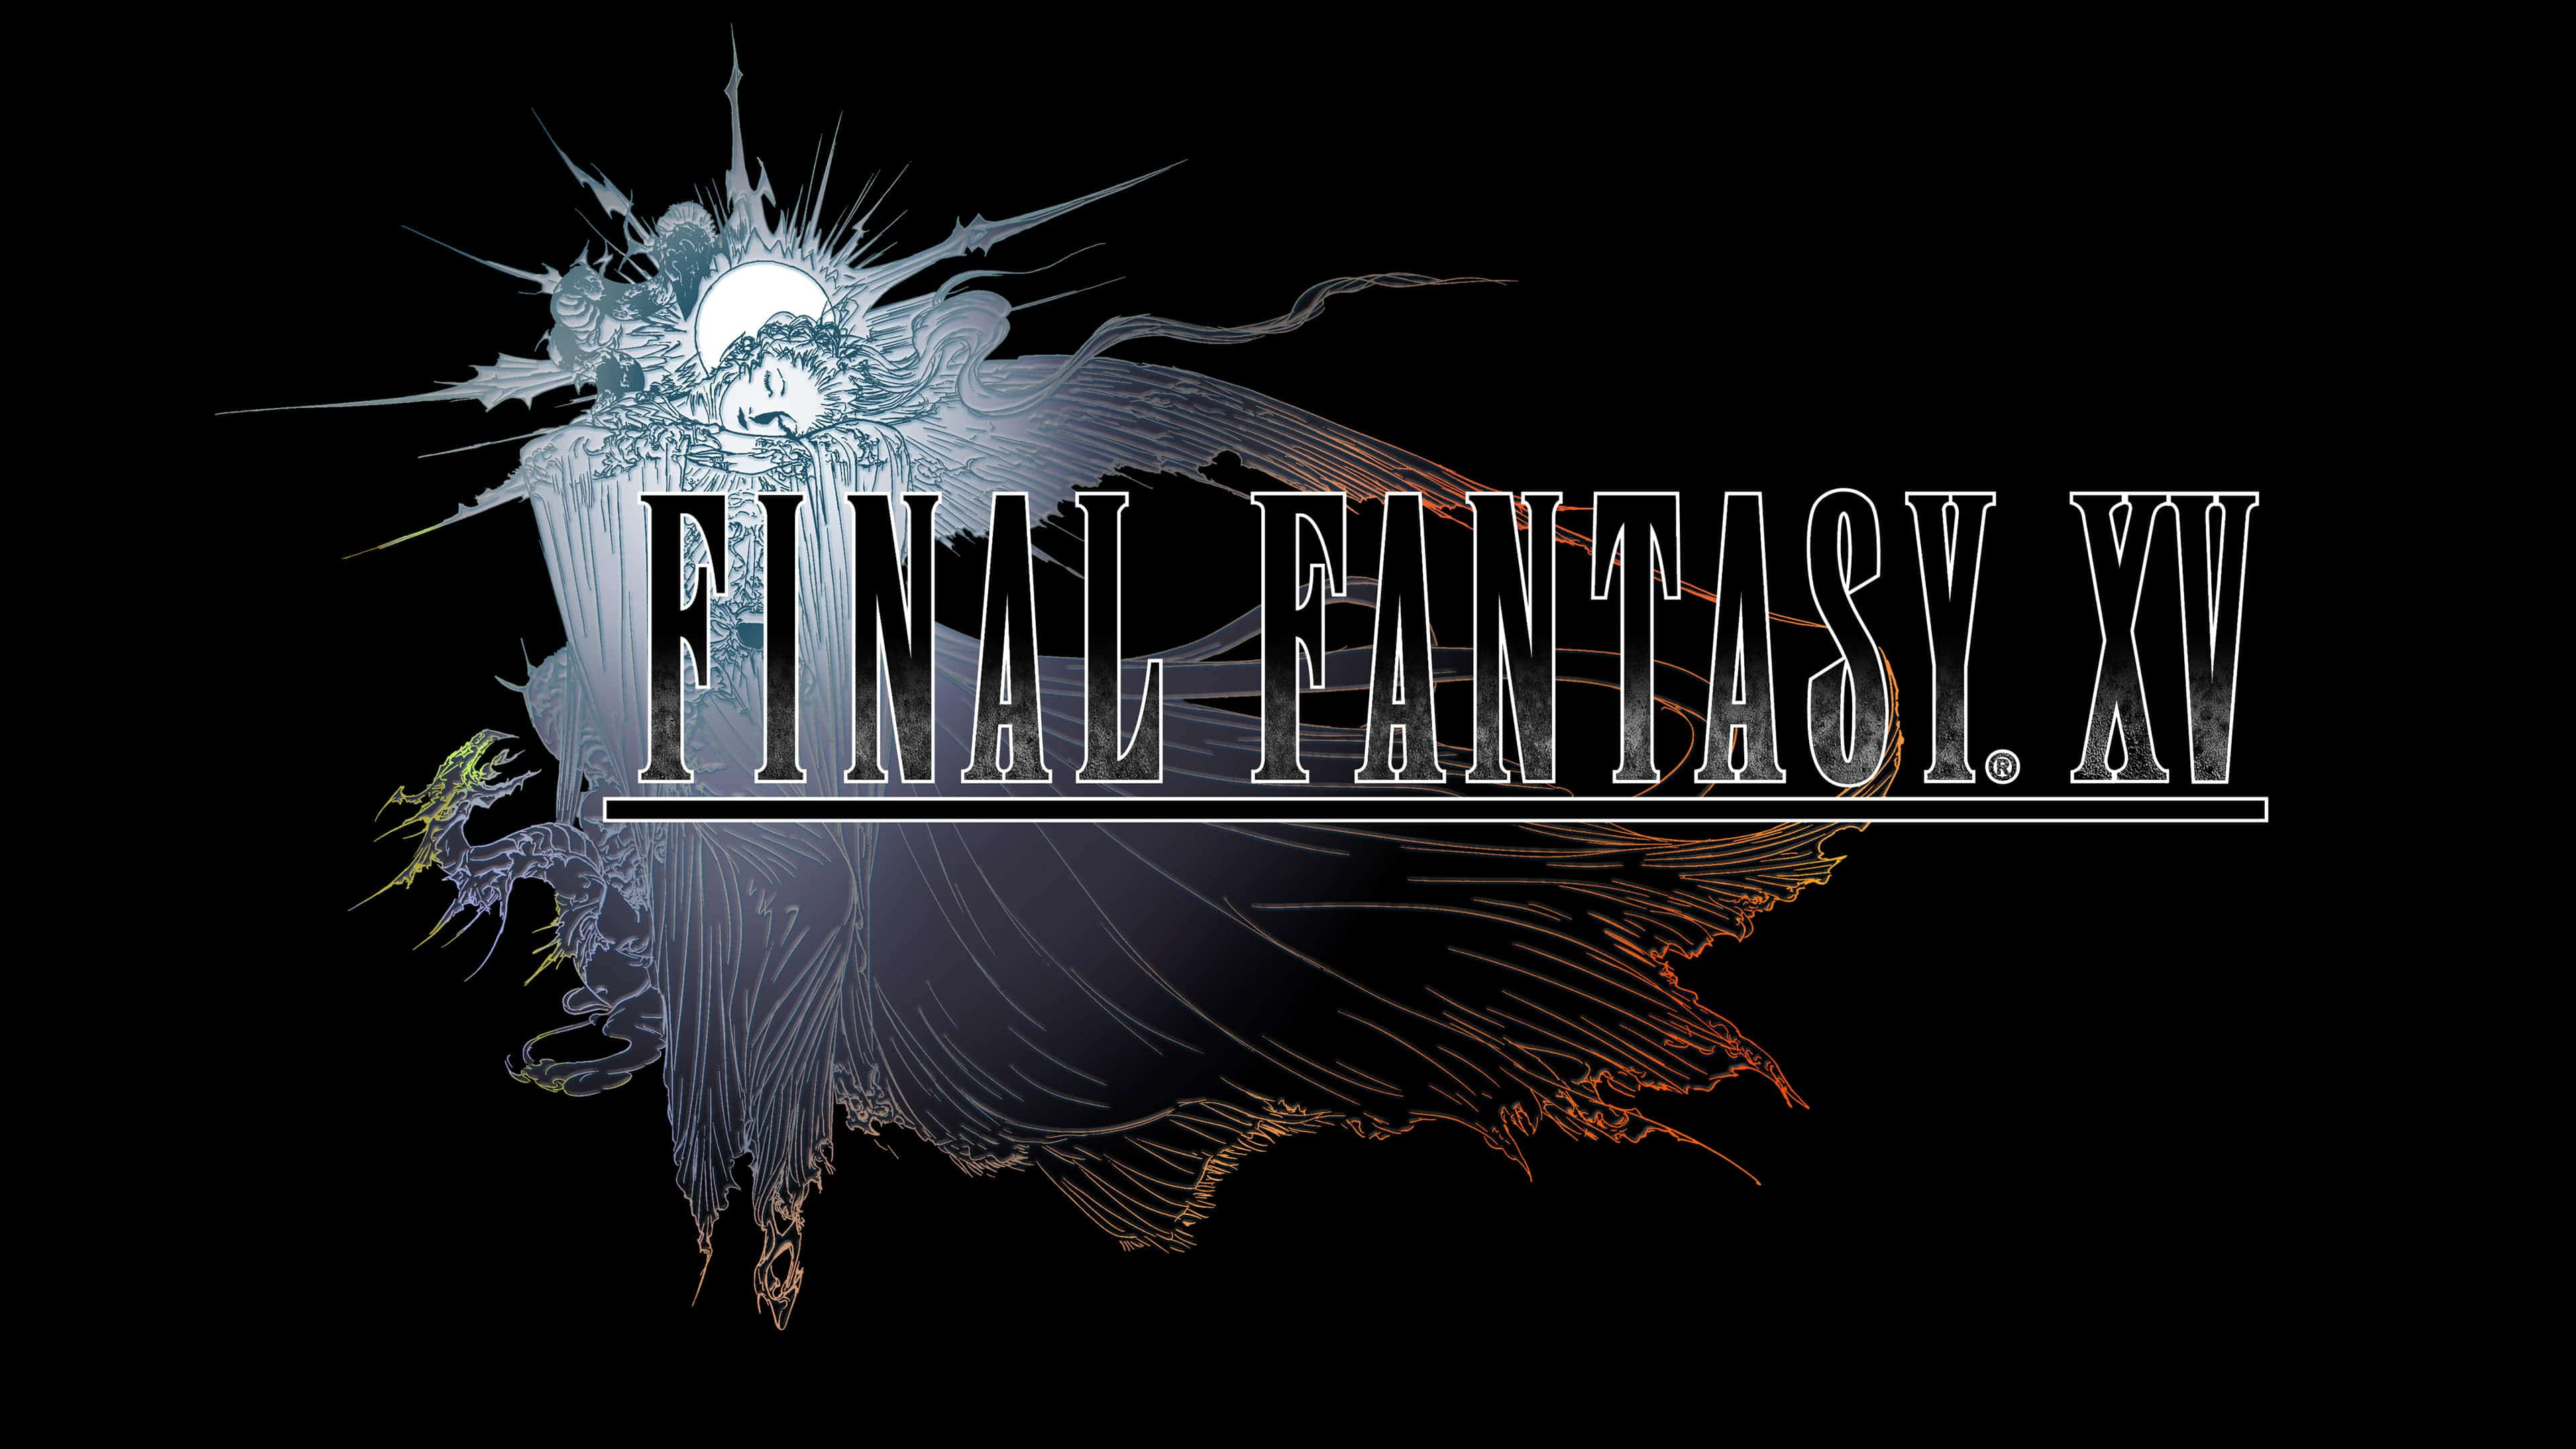 Final Fantasy XV Logo Rate Wallpaper DOWNLOAD IMAGE